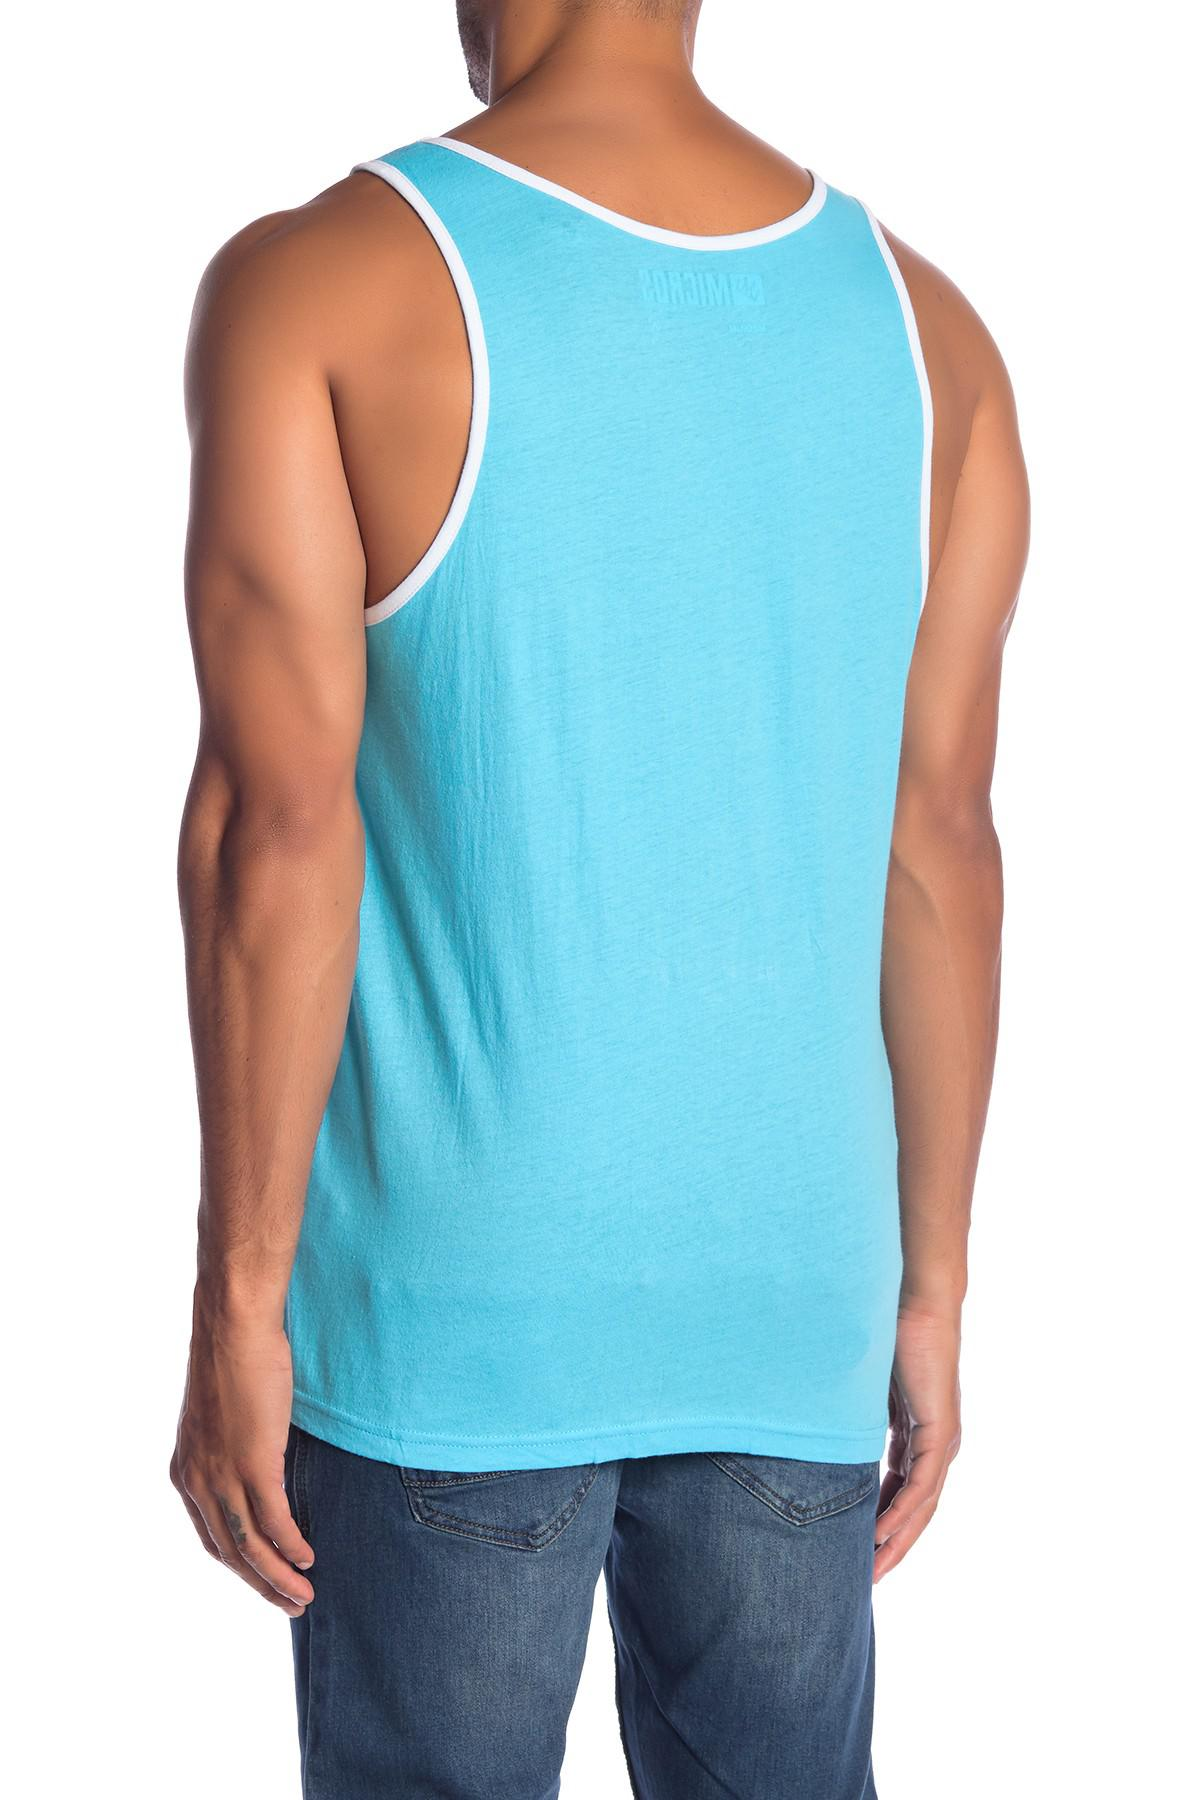 0e19aa5f0de33 Lyst - Micros Lucio Sunday Surf Tank Top in Blue for Men